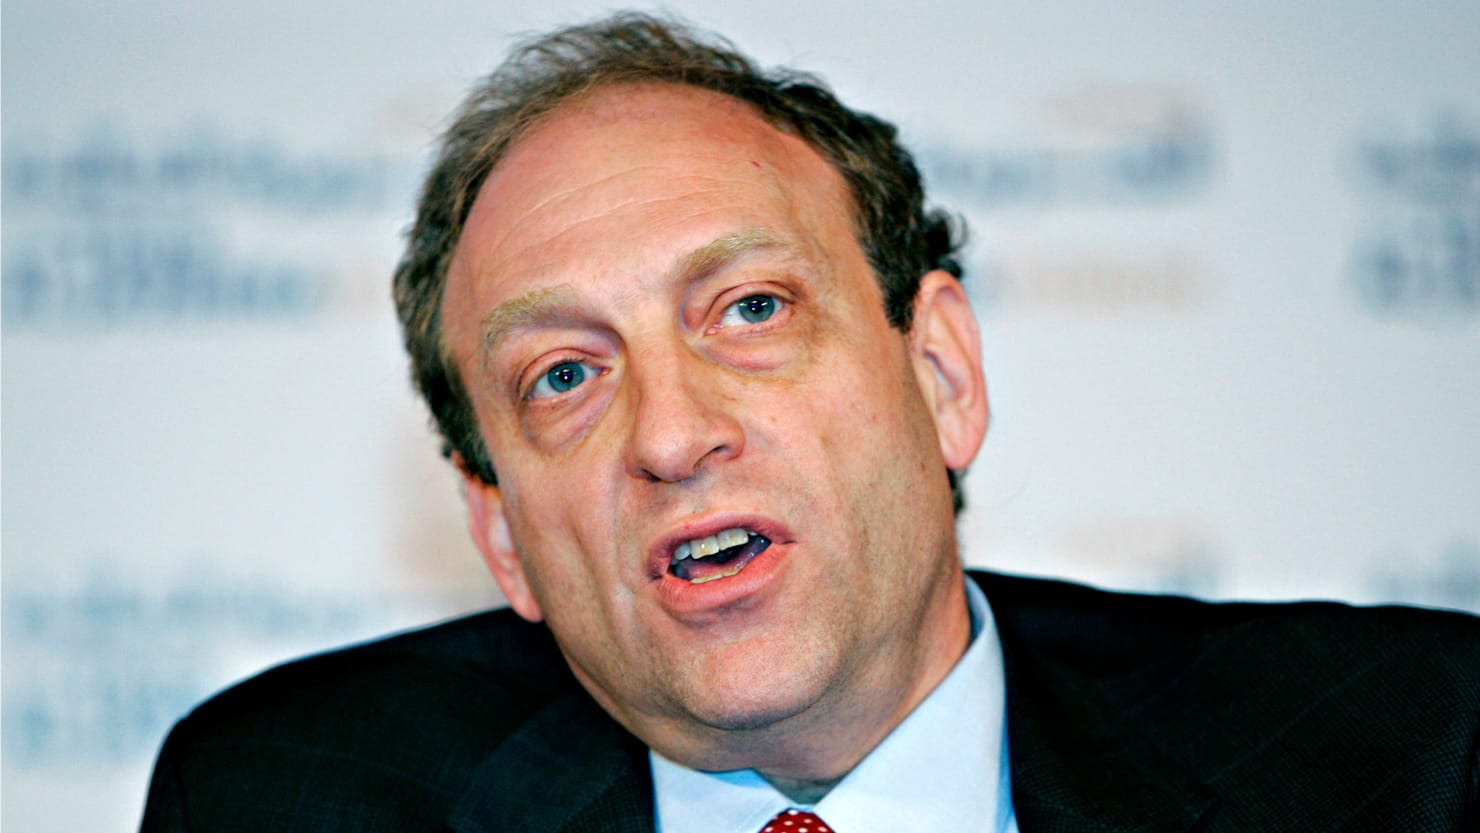 Michael Oreskes, NPR exec, resigns amid secual harassment charges